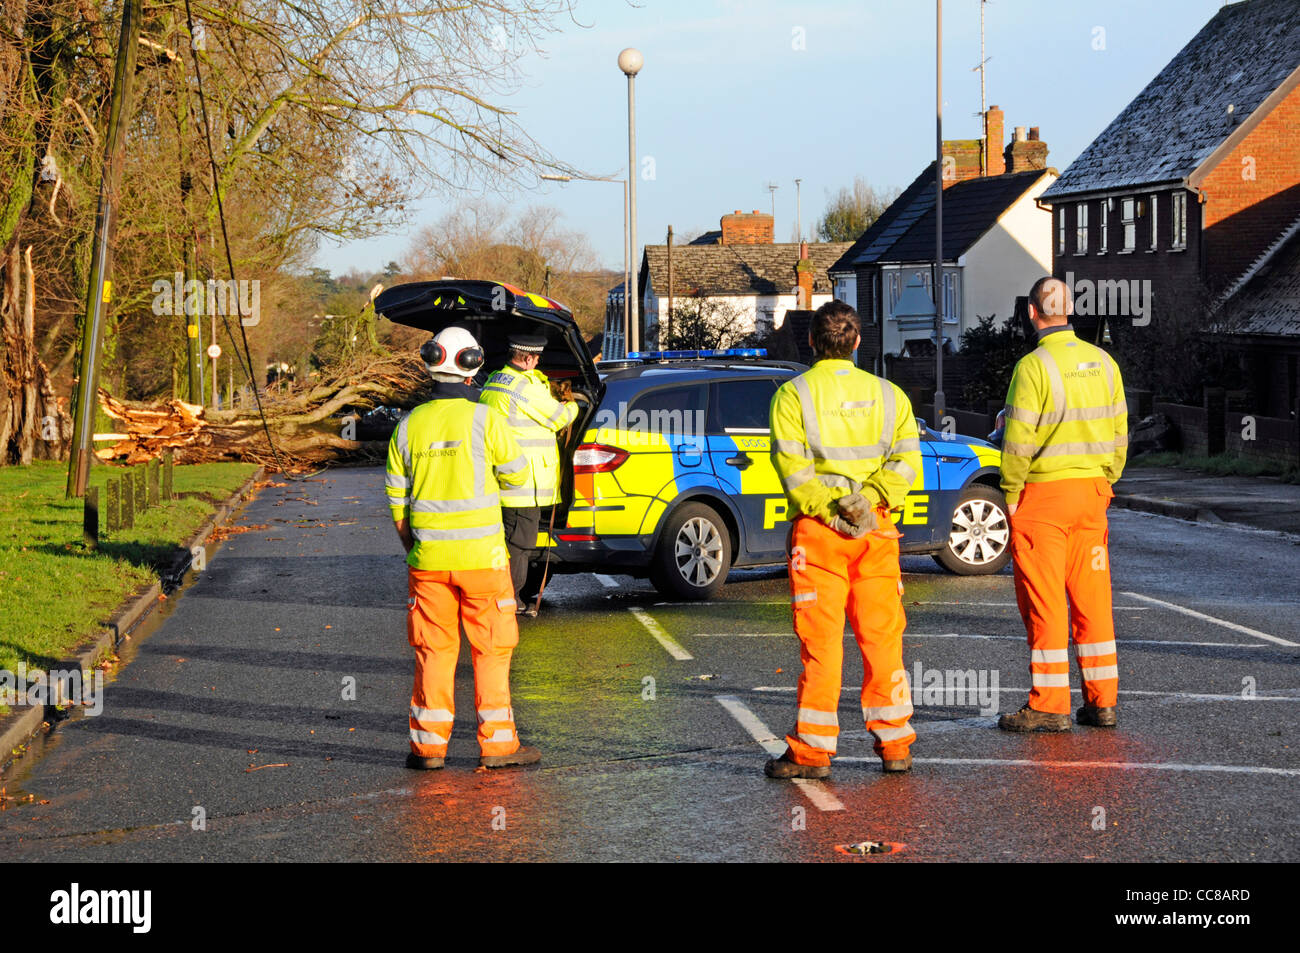 Workman awaiting electricity disconnection after tree blown over during winter storm damaged cables and closed road Stock Photo